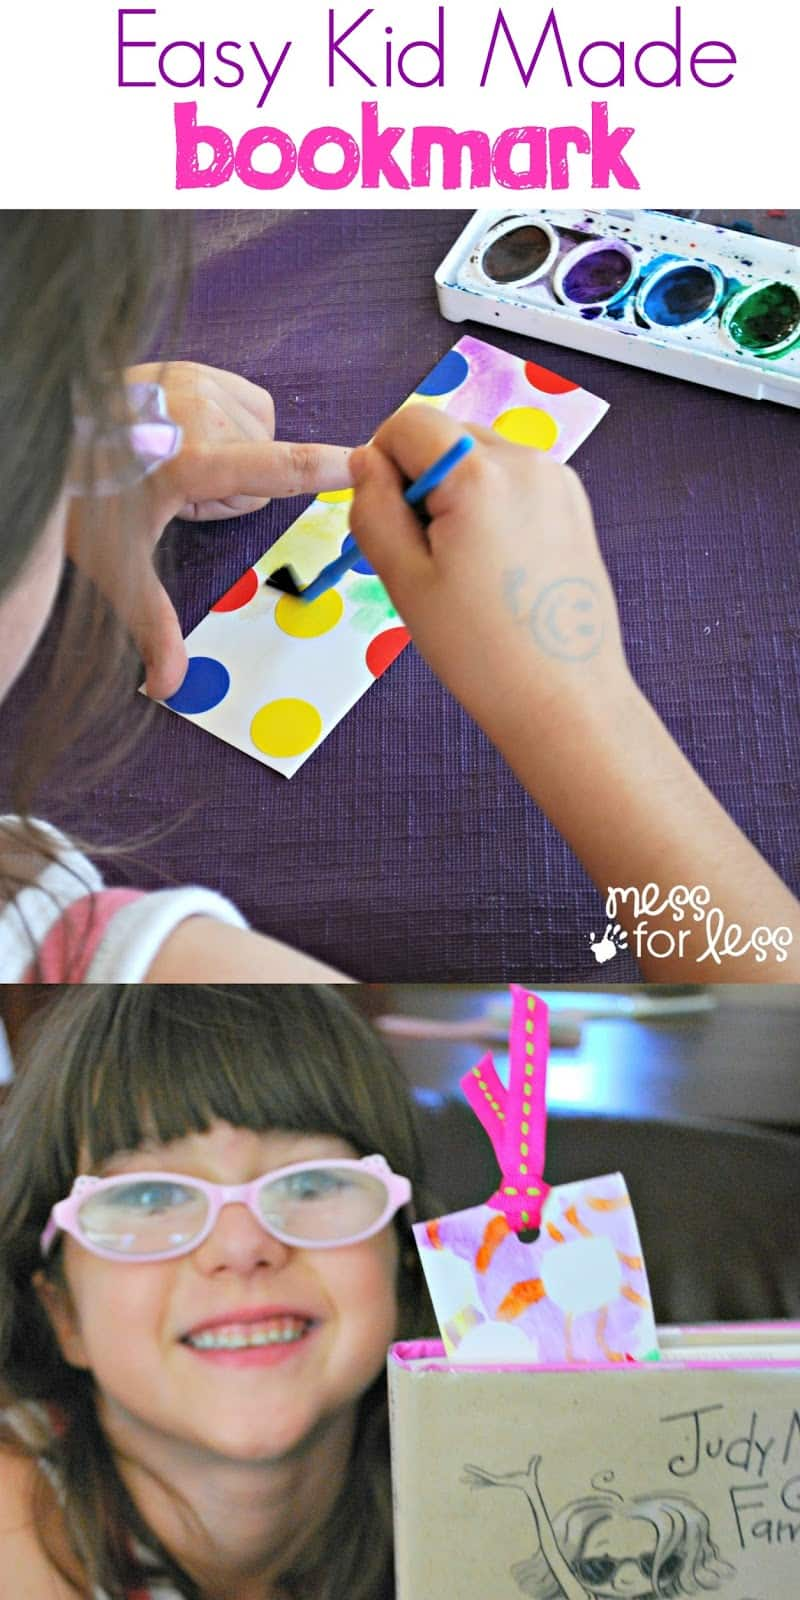 Easy Kid Made Bookmark - watercolor resist bookmarks are easy to make and fun to use and give as gifts.